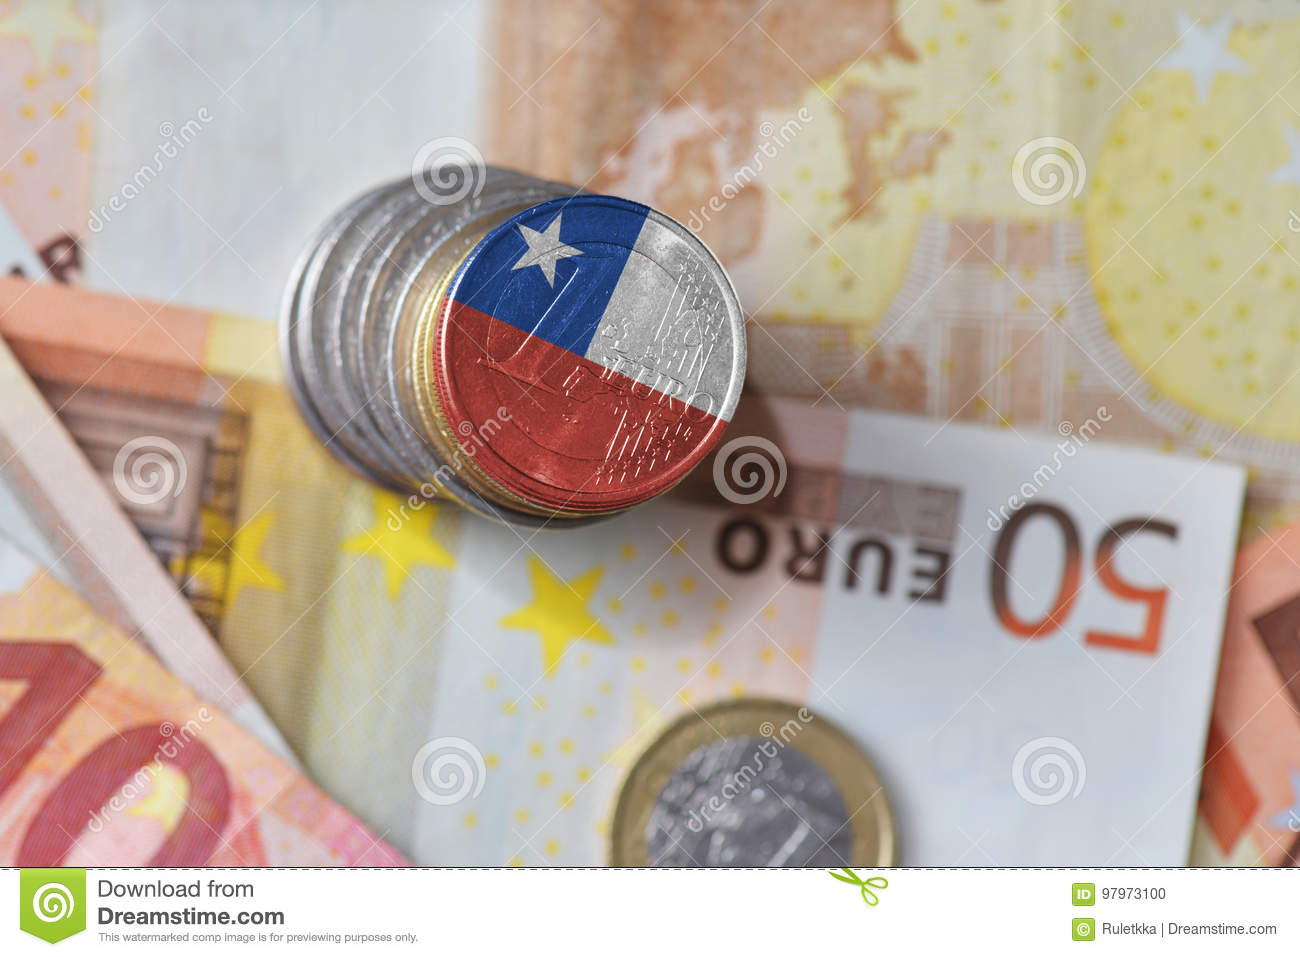 Euro Coin With National Flag Of Chile On The Euro Money Banknotes